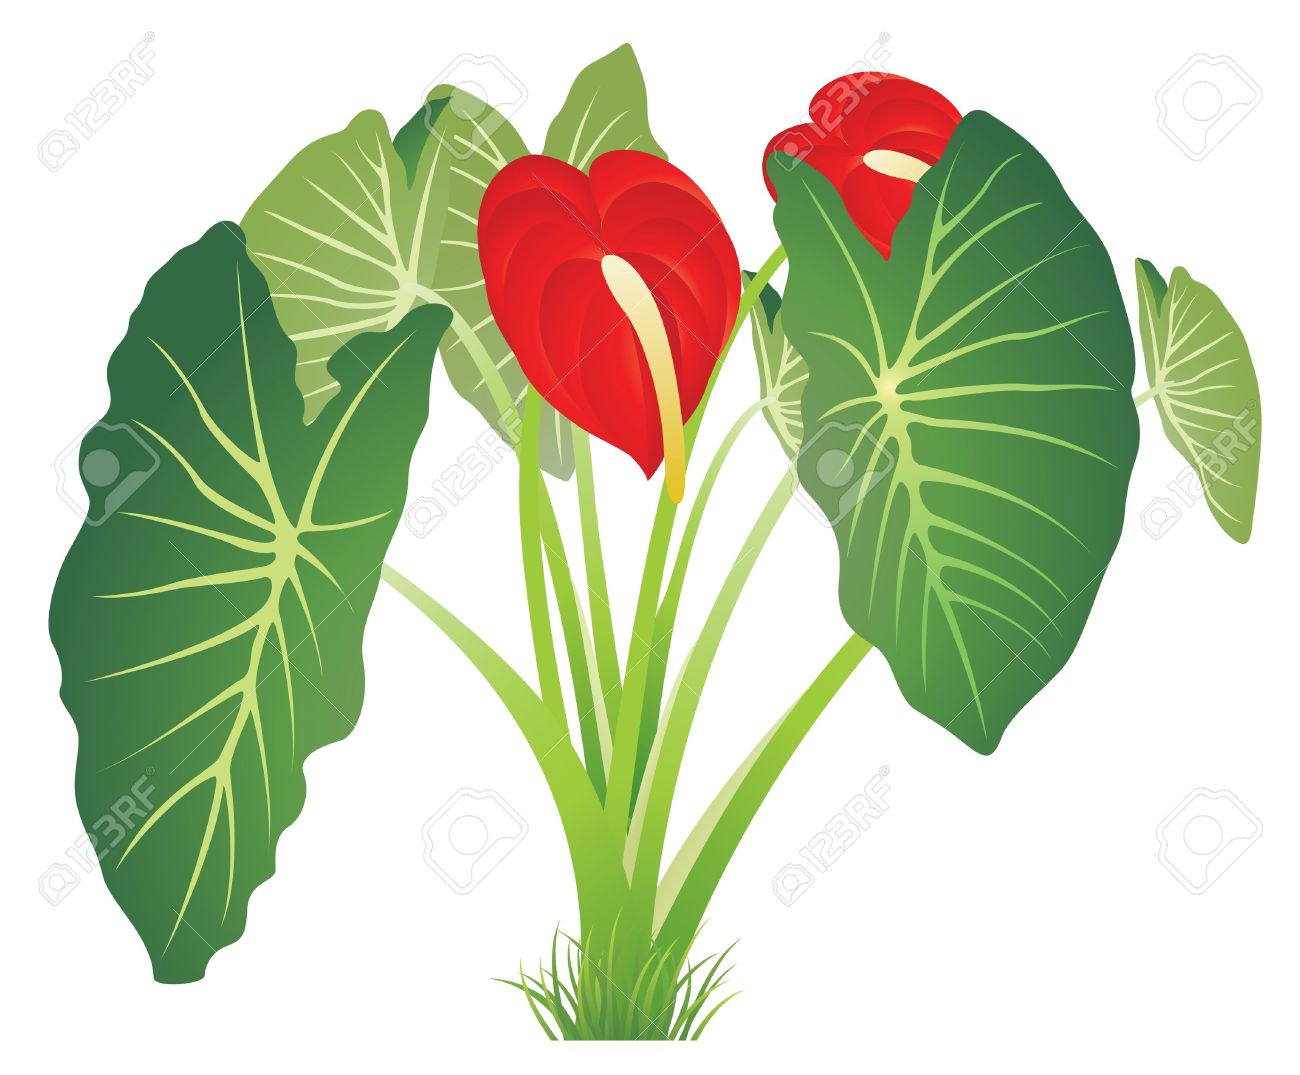 Tropical vegetation clipart - Clipground